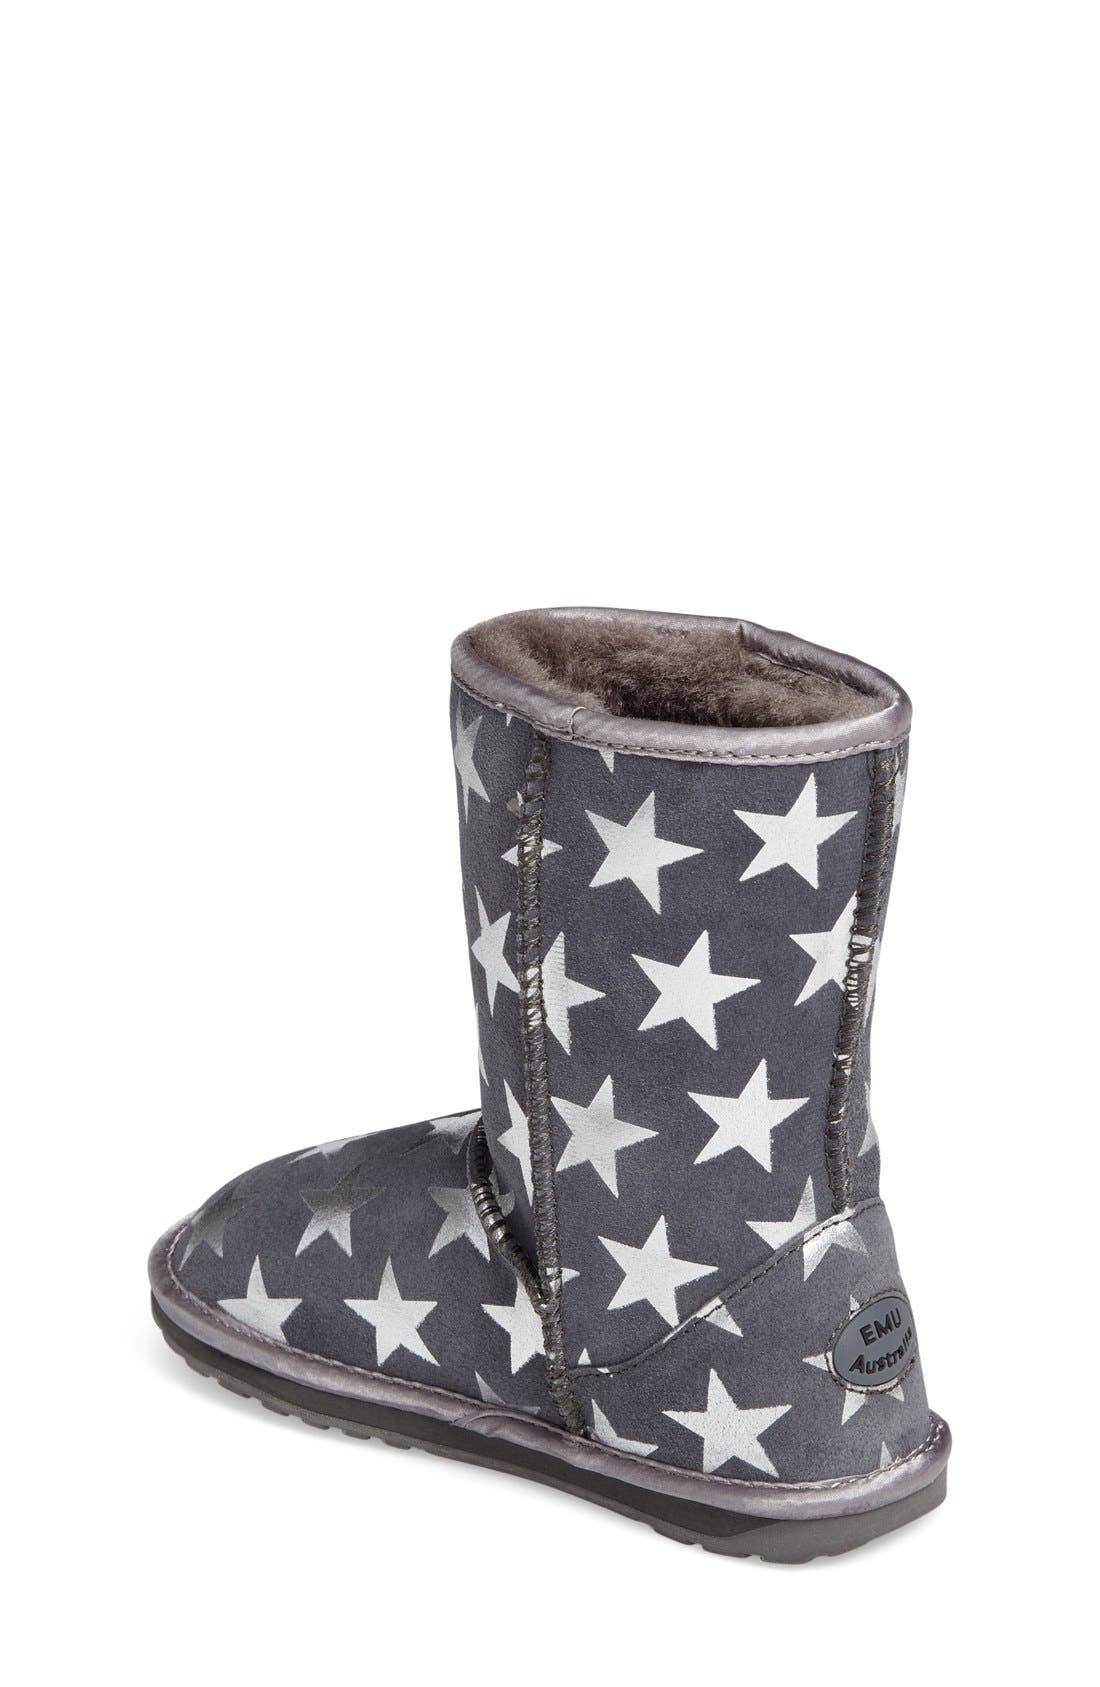 EMUAustralia Starry Night Boot,                             Alternate thumbnail 8, color,                             CHARCOAL